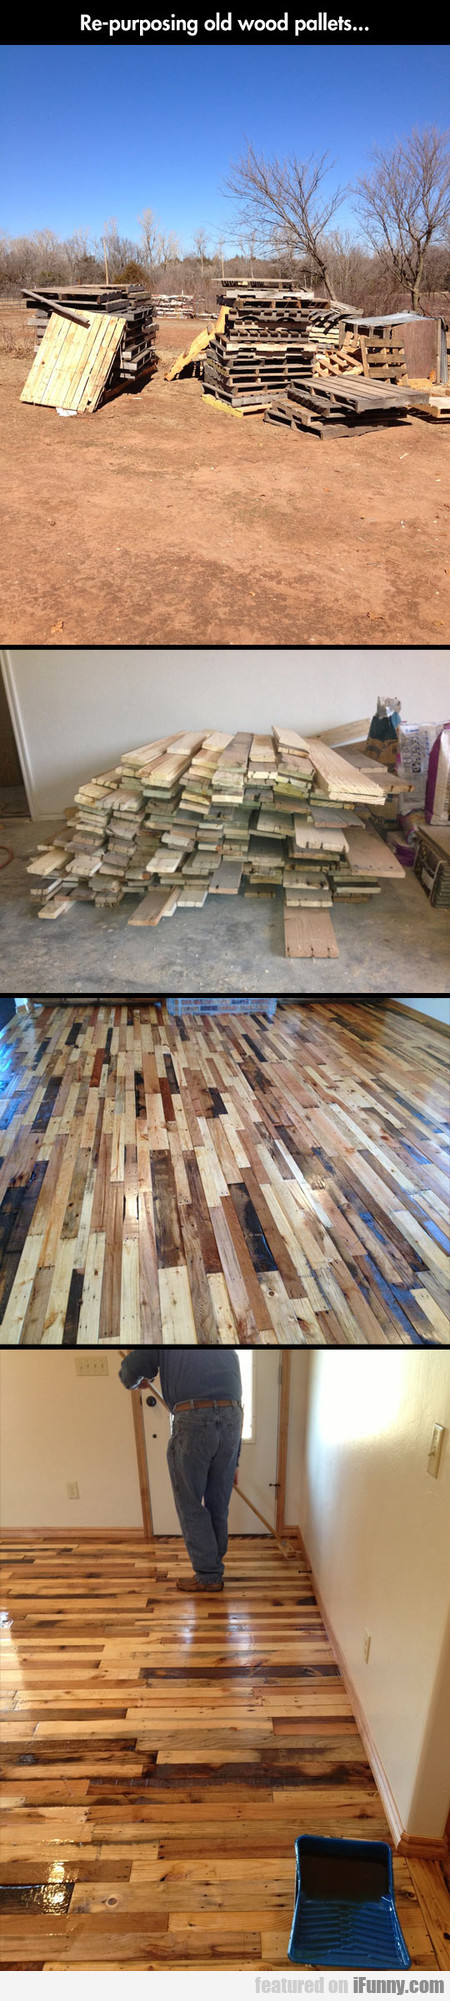 Re-purposing Old Wood Pallets...